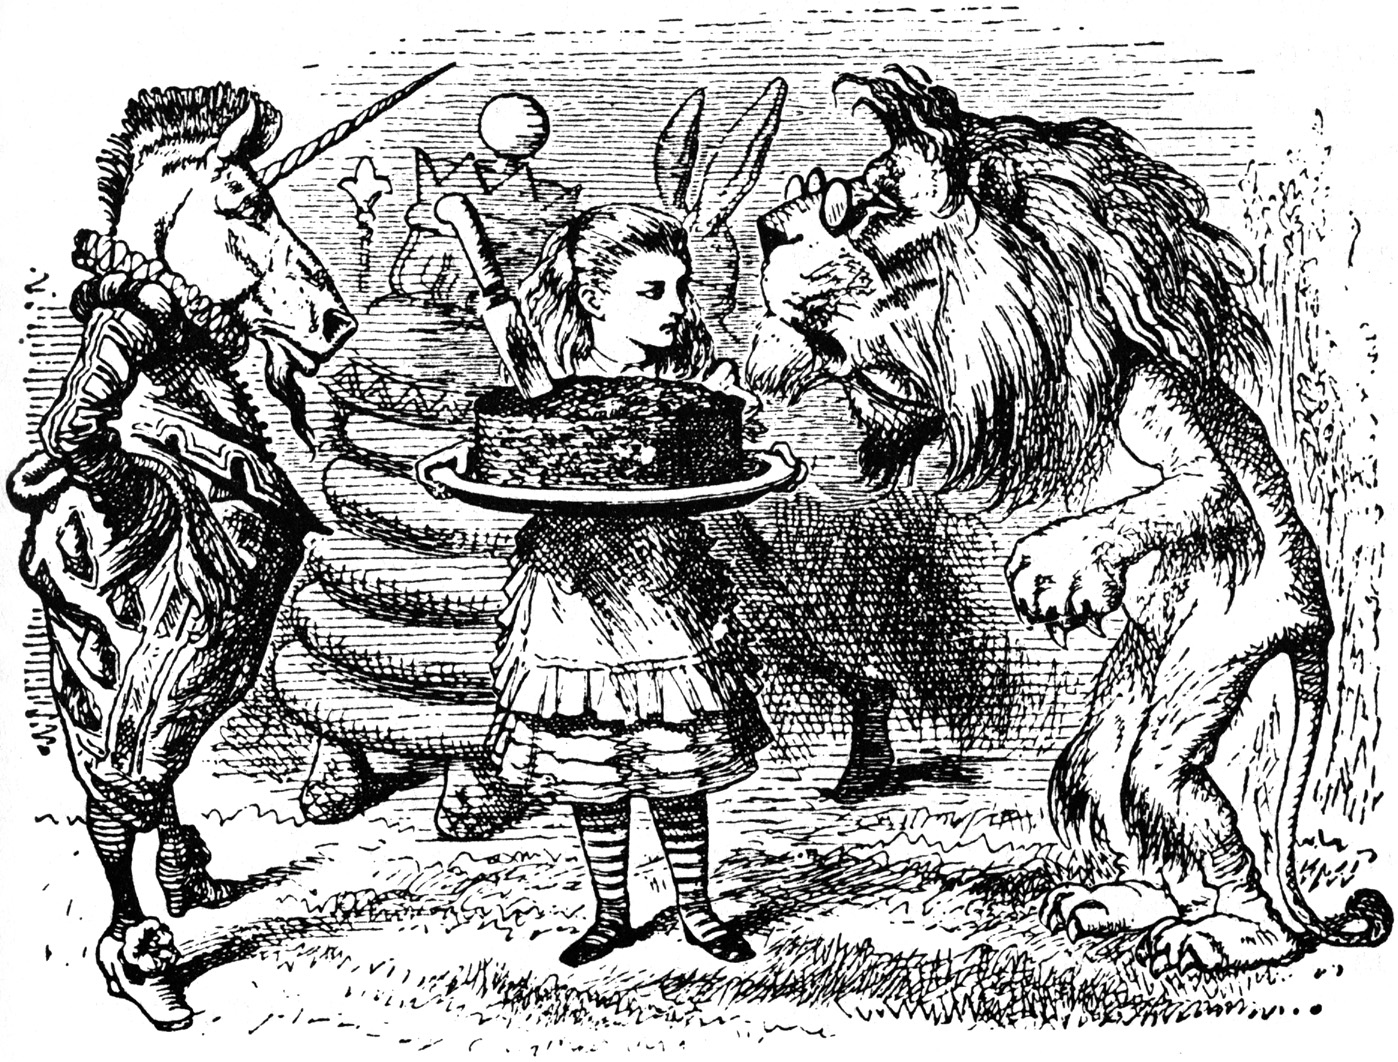 John Tenniel's illustration for Through The Looking Glass